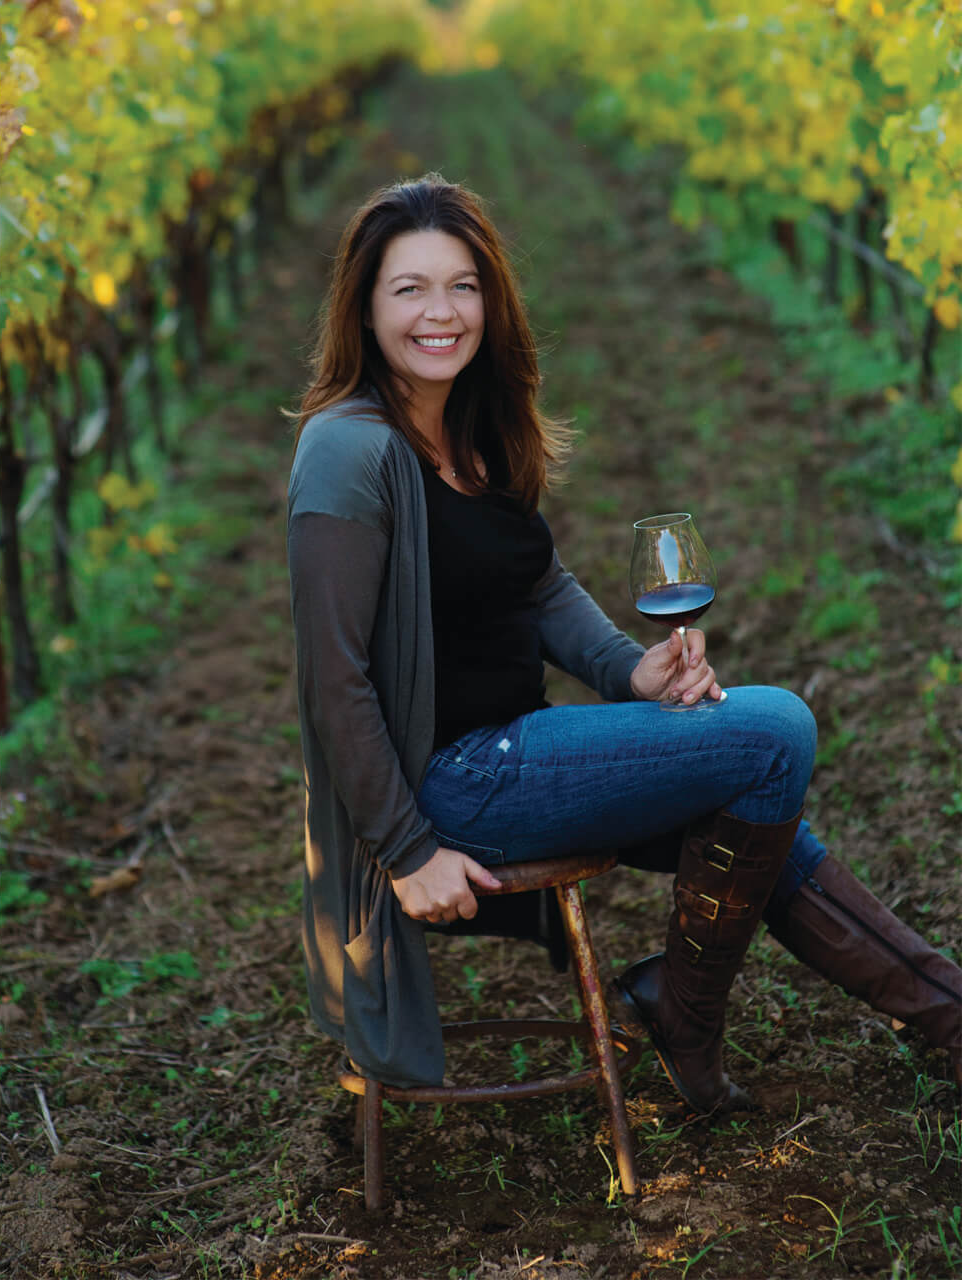 Luisa Ponzi is one of the Six New World Female Winemakers You Should Know